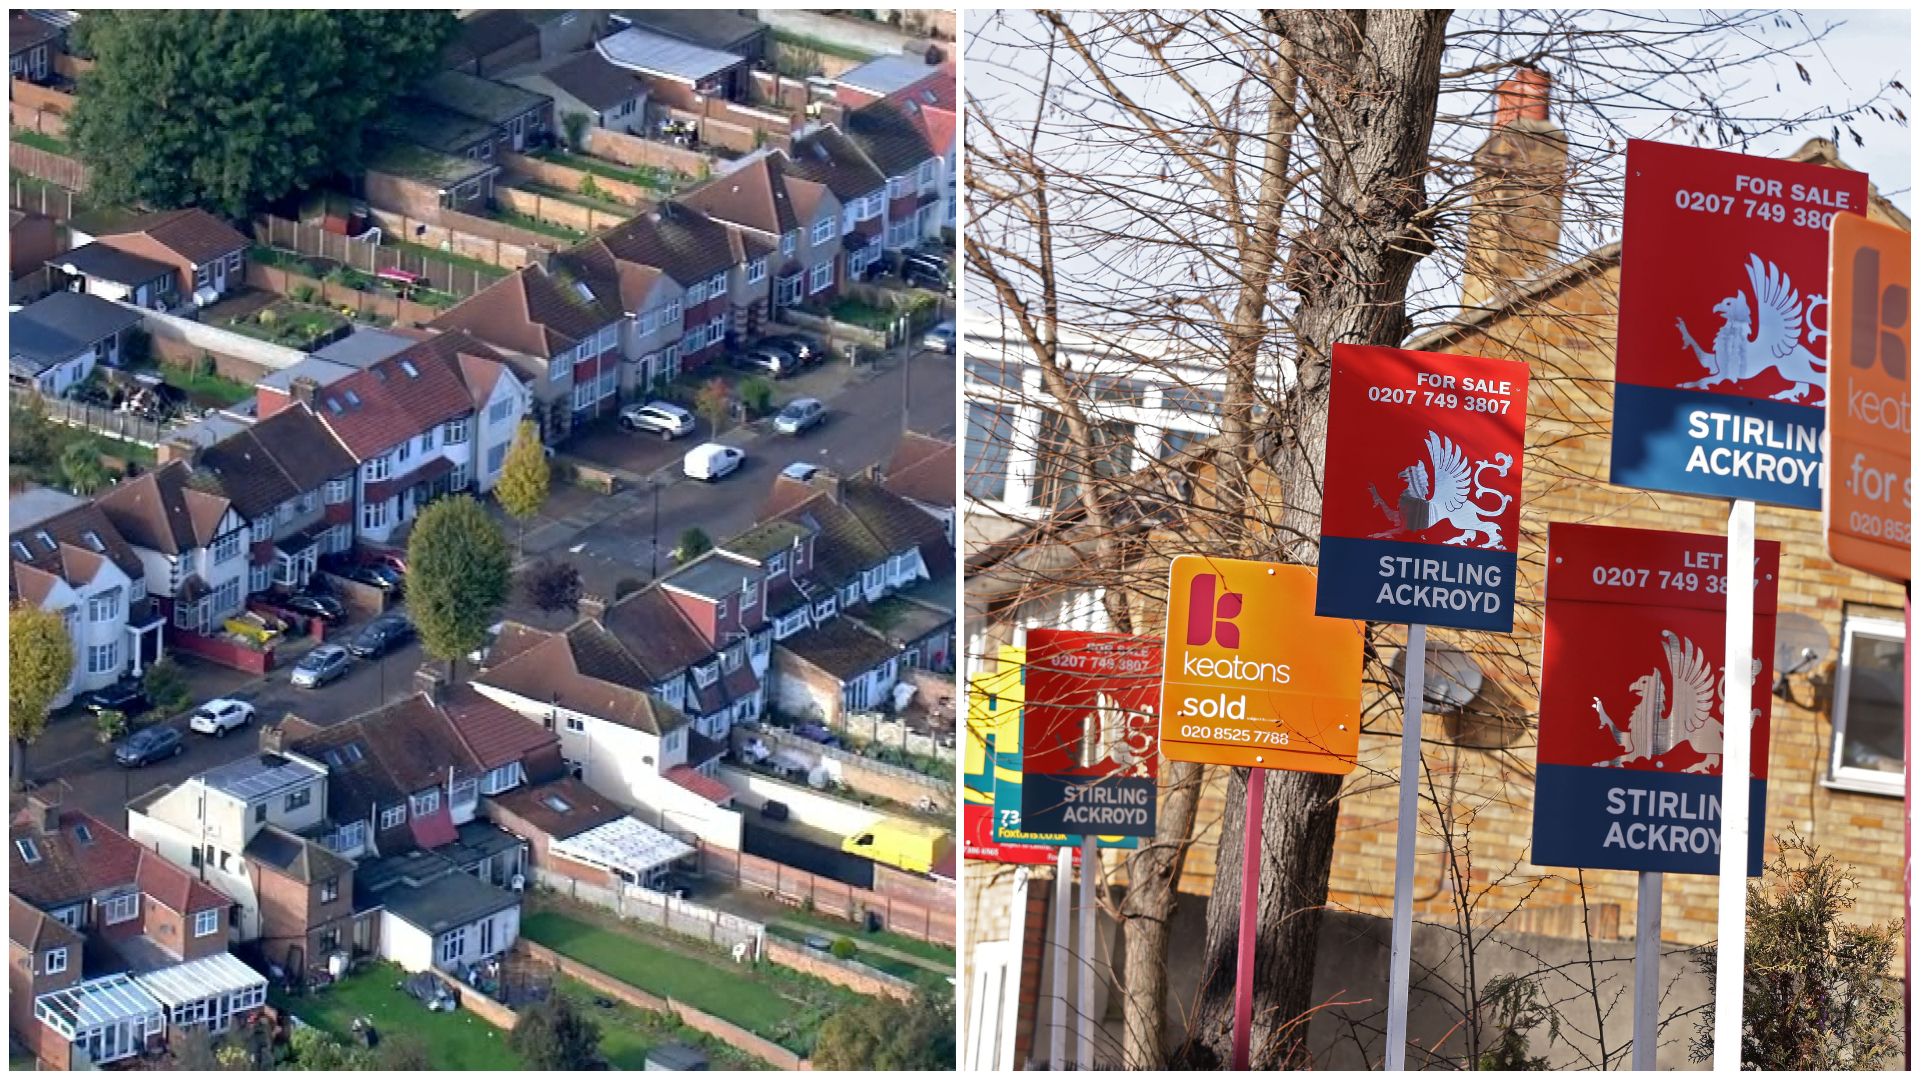 Revealed: Top 20 areas in country which have seen bumper rise in house prices | ITV News